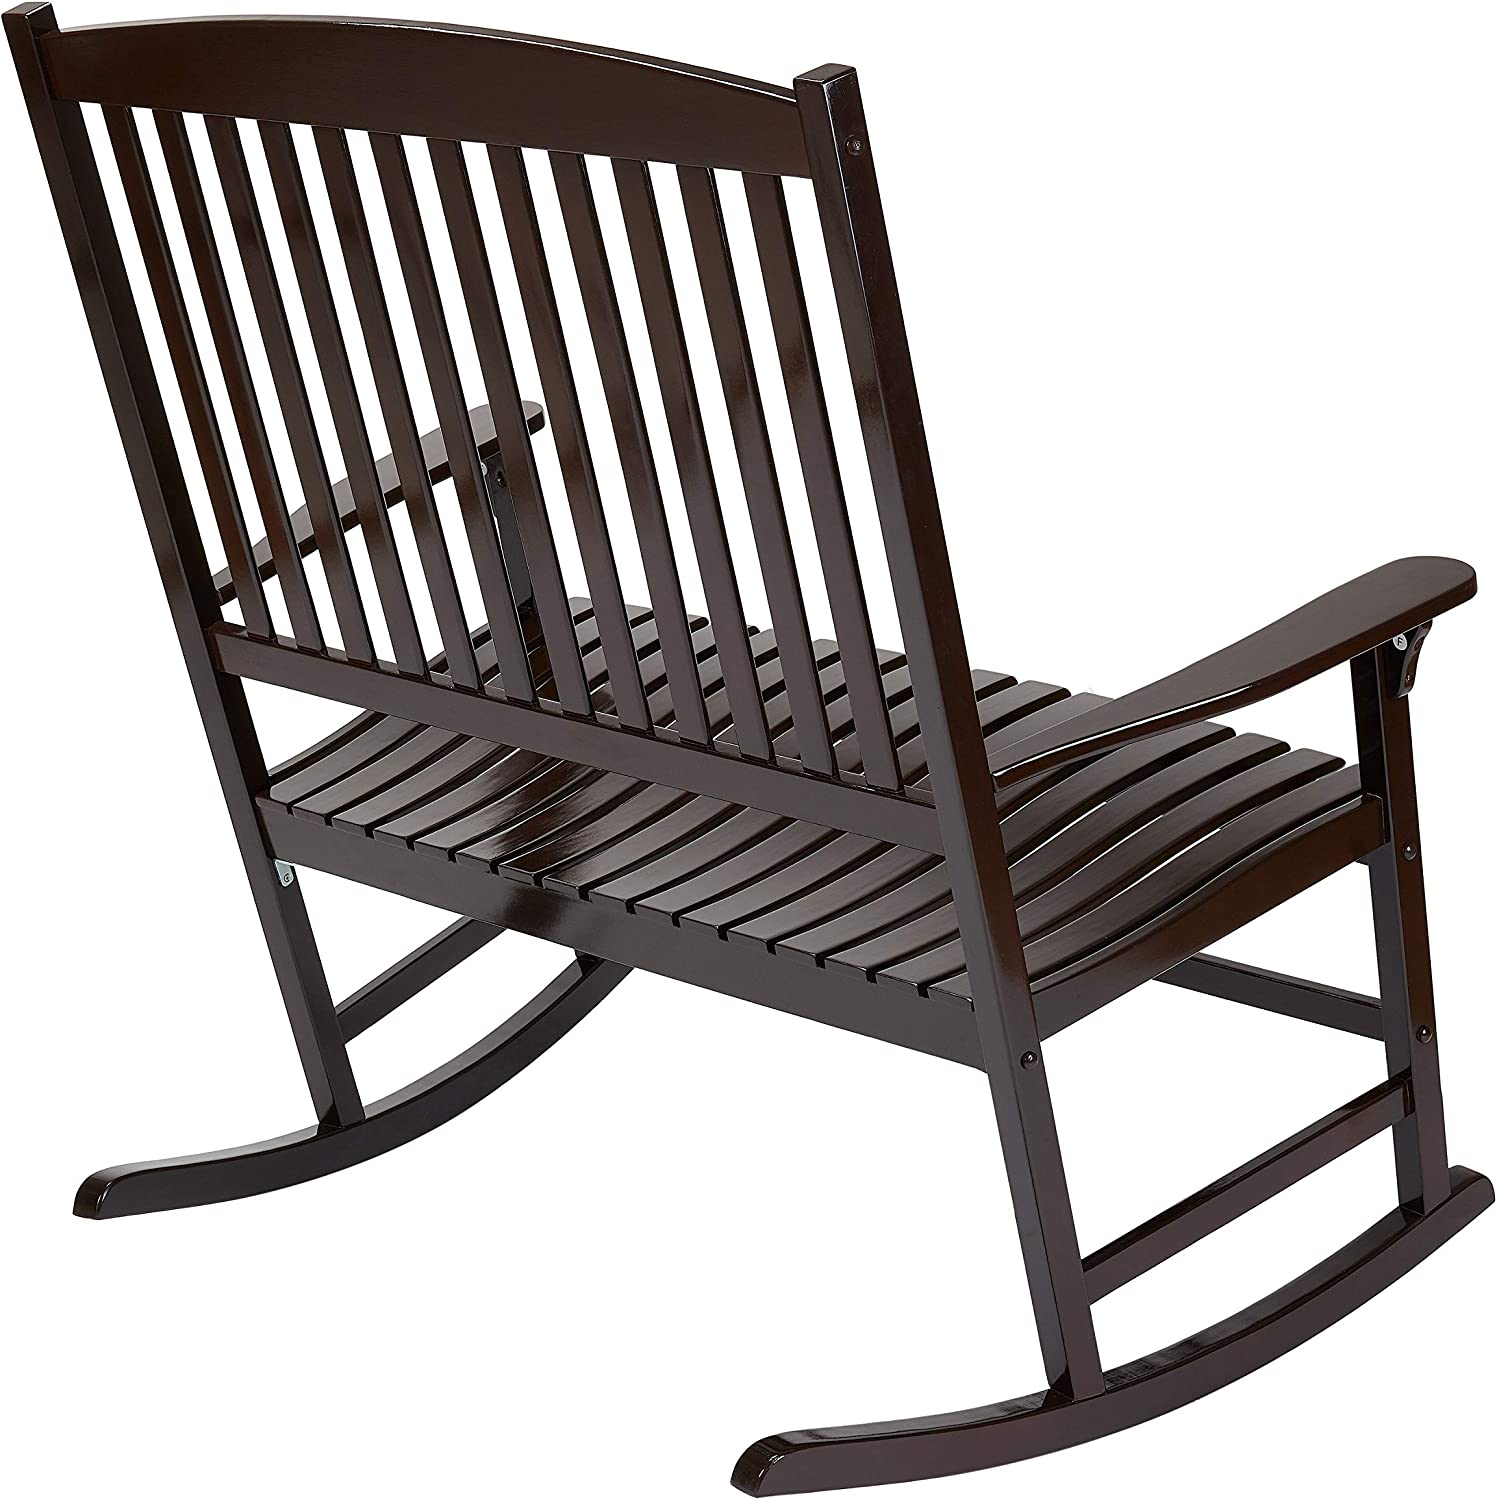 All-Weather Outdoor Seats 2 Porch Double Rocker Rocking Chair Dark Brown with Outdoor Pillow Bundle Set